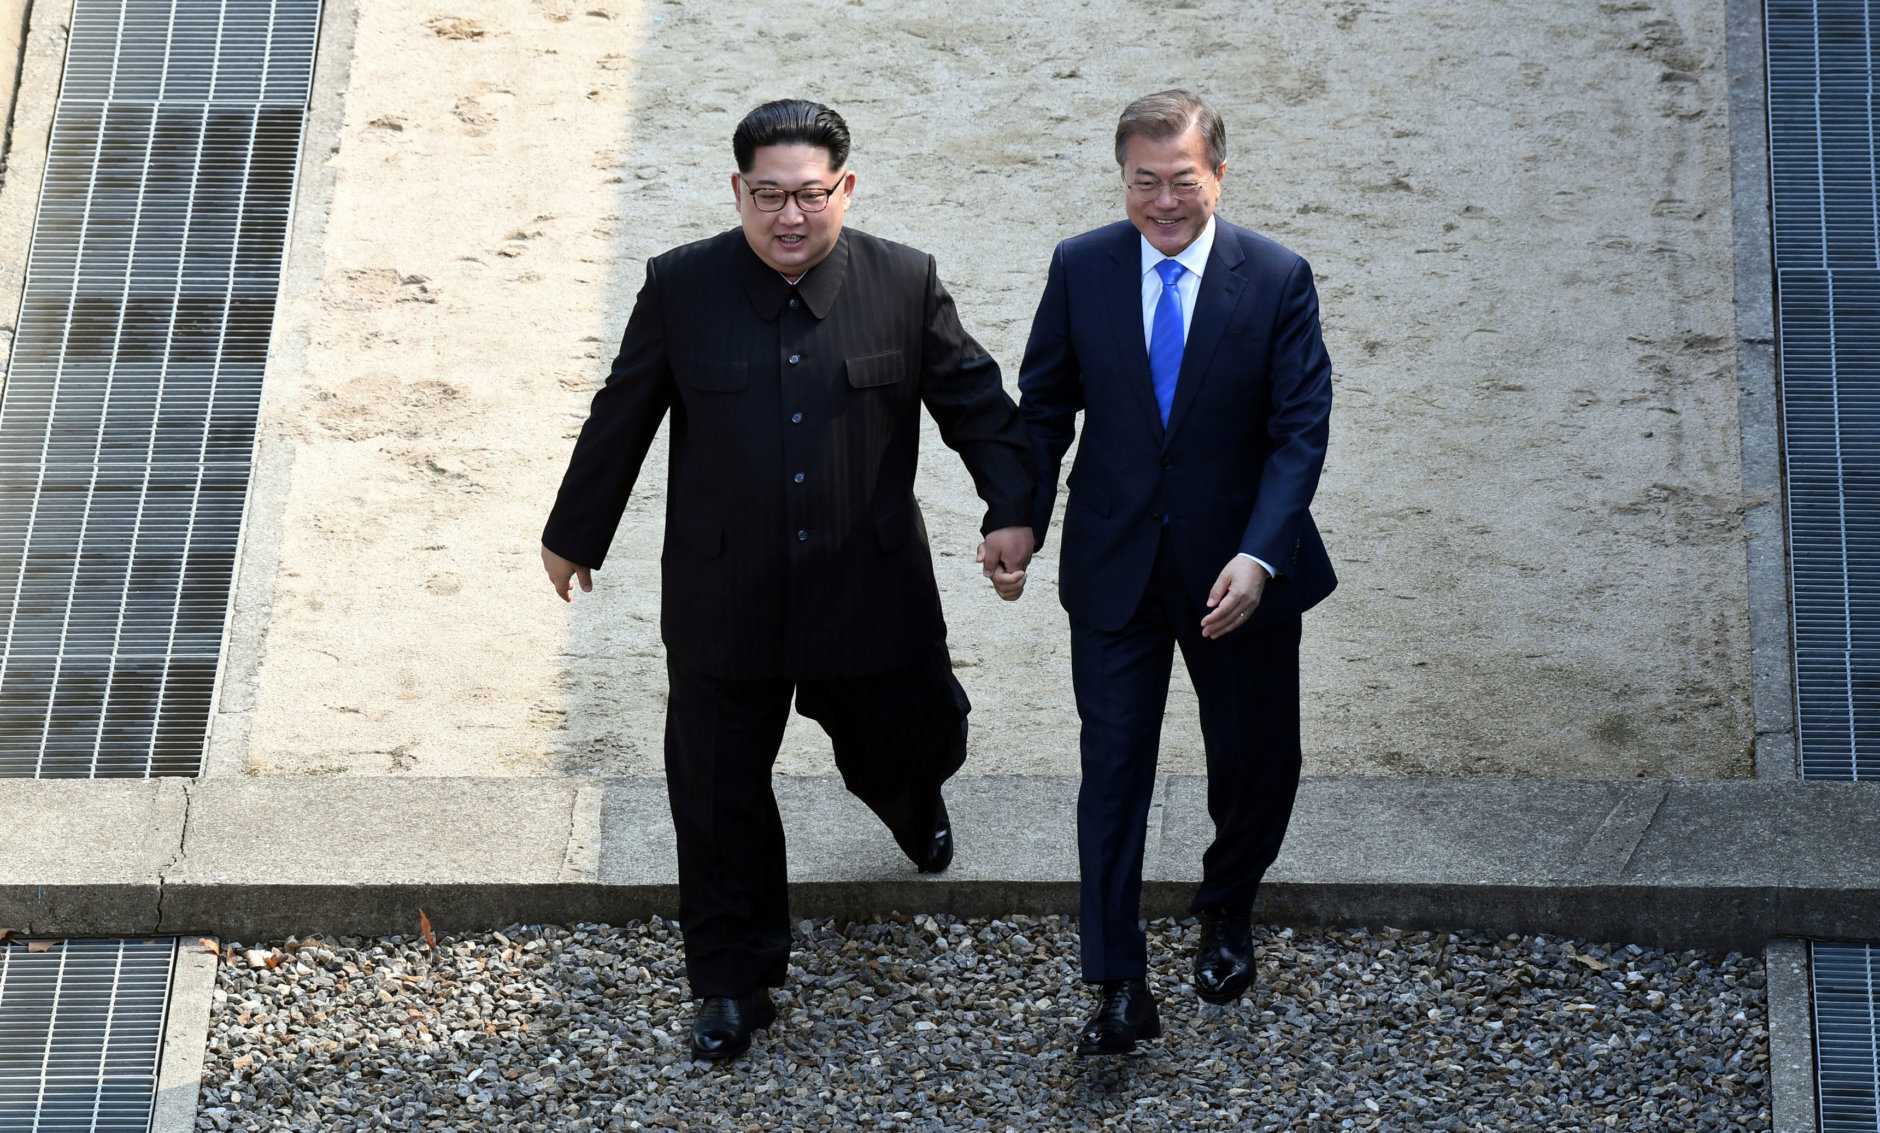 North Korean leader Kim Jong Un, left, and South Korean President Moon Jae-in cross the military demarcation line at the border village of Panmunjom in Demilitarized Zone on April 27, 2018. (Korea Summit Press Pool via AP)